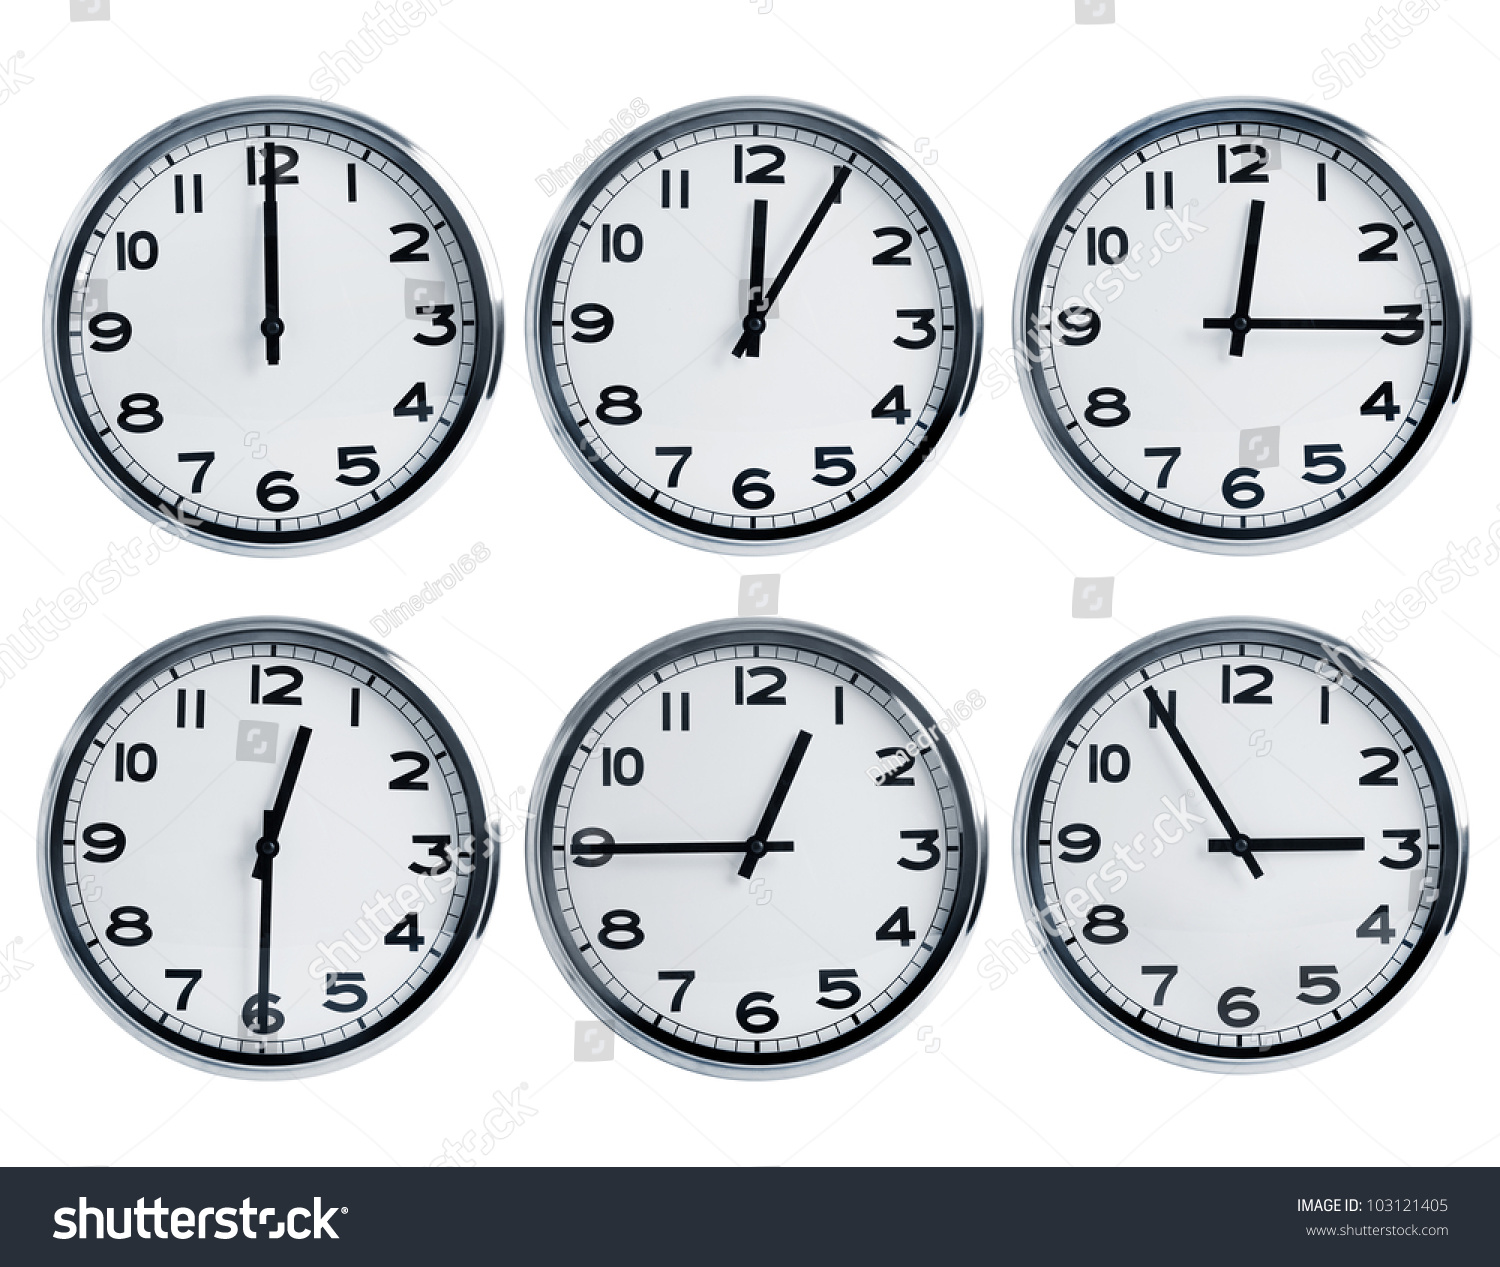 Wall Clocks Different Time On Dial Stock Photo